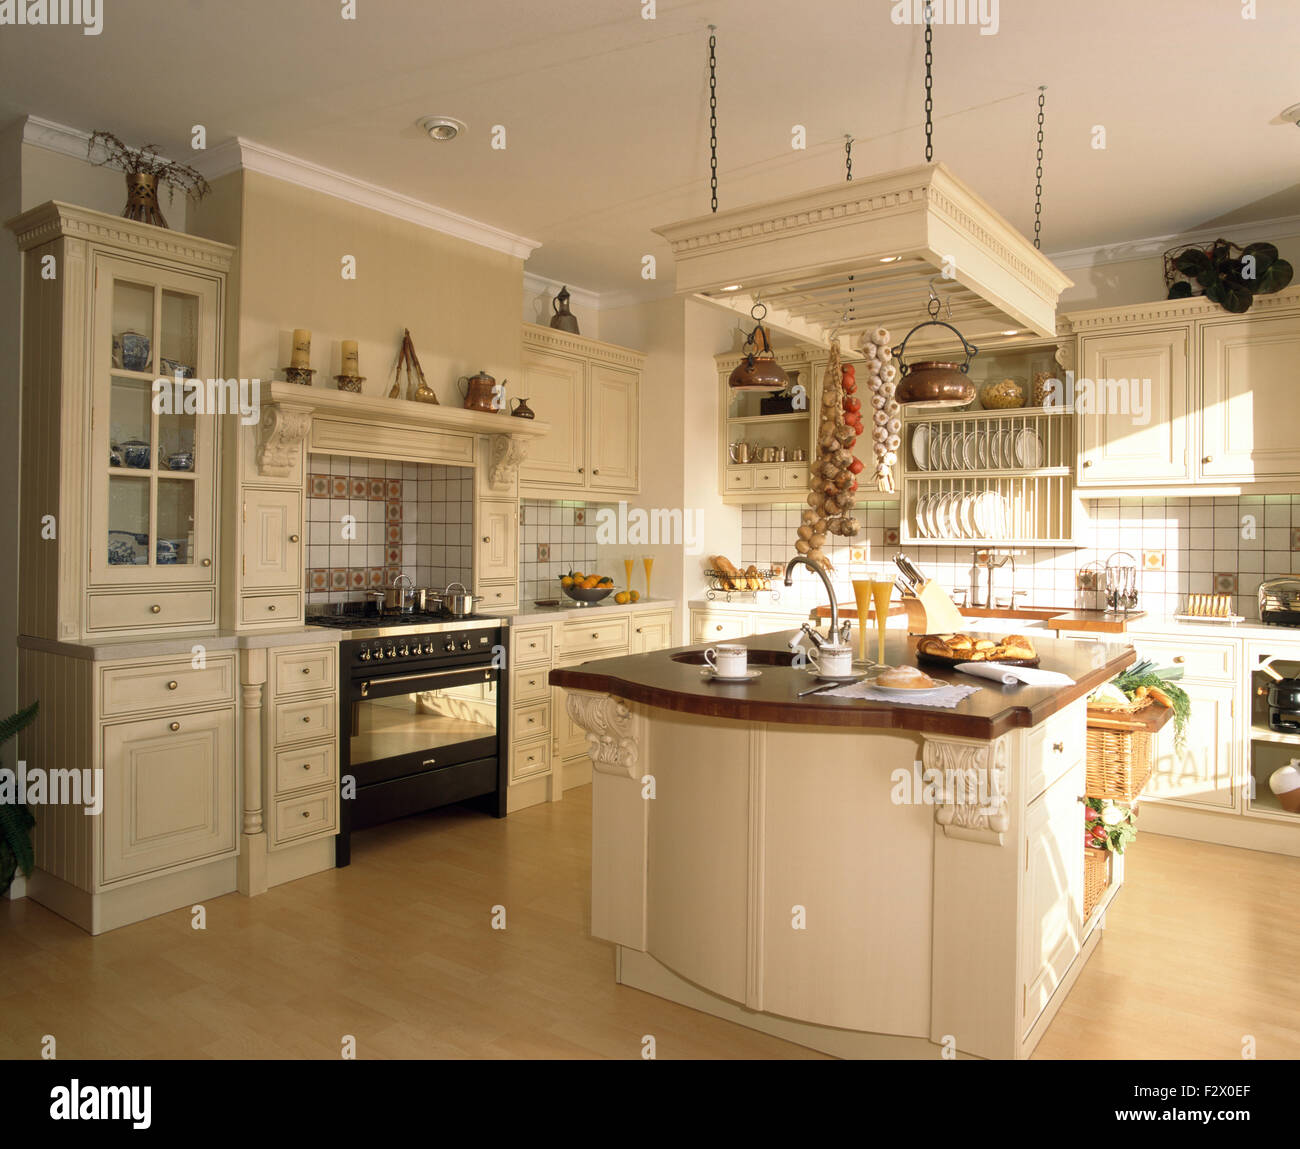 Sink in island unit in modern Spanish kitchen with a range oven ...